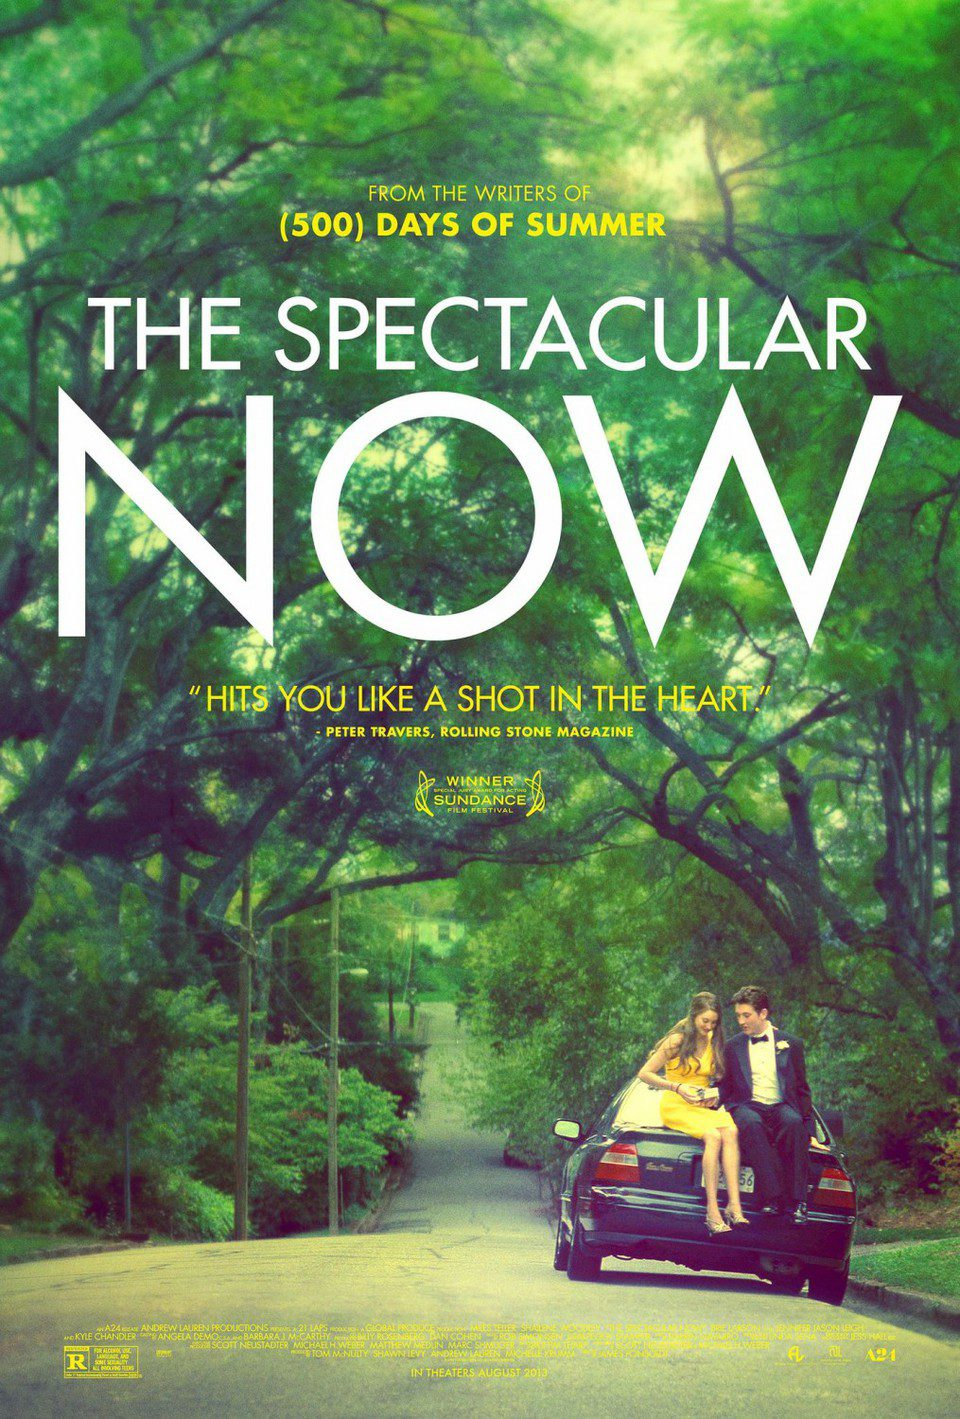 EEUU poster for The Spectacular Now